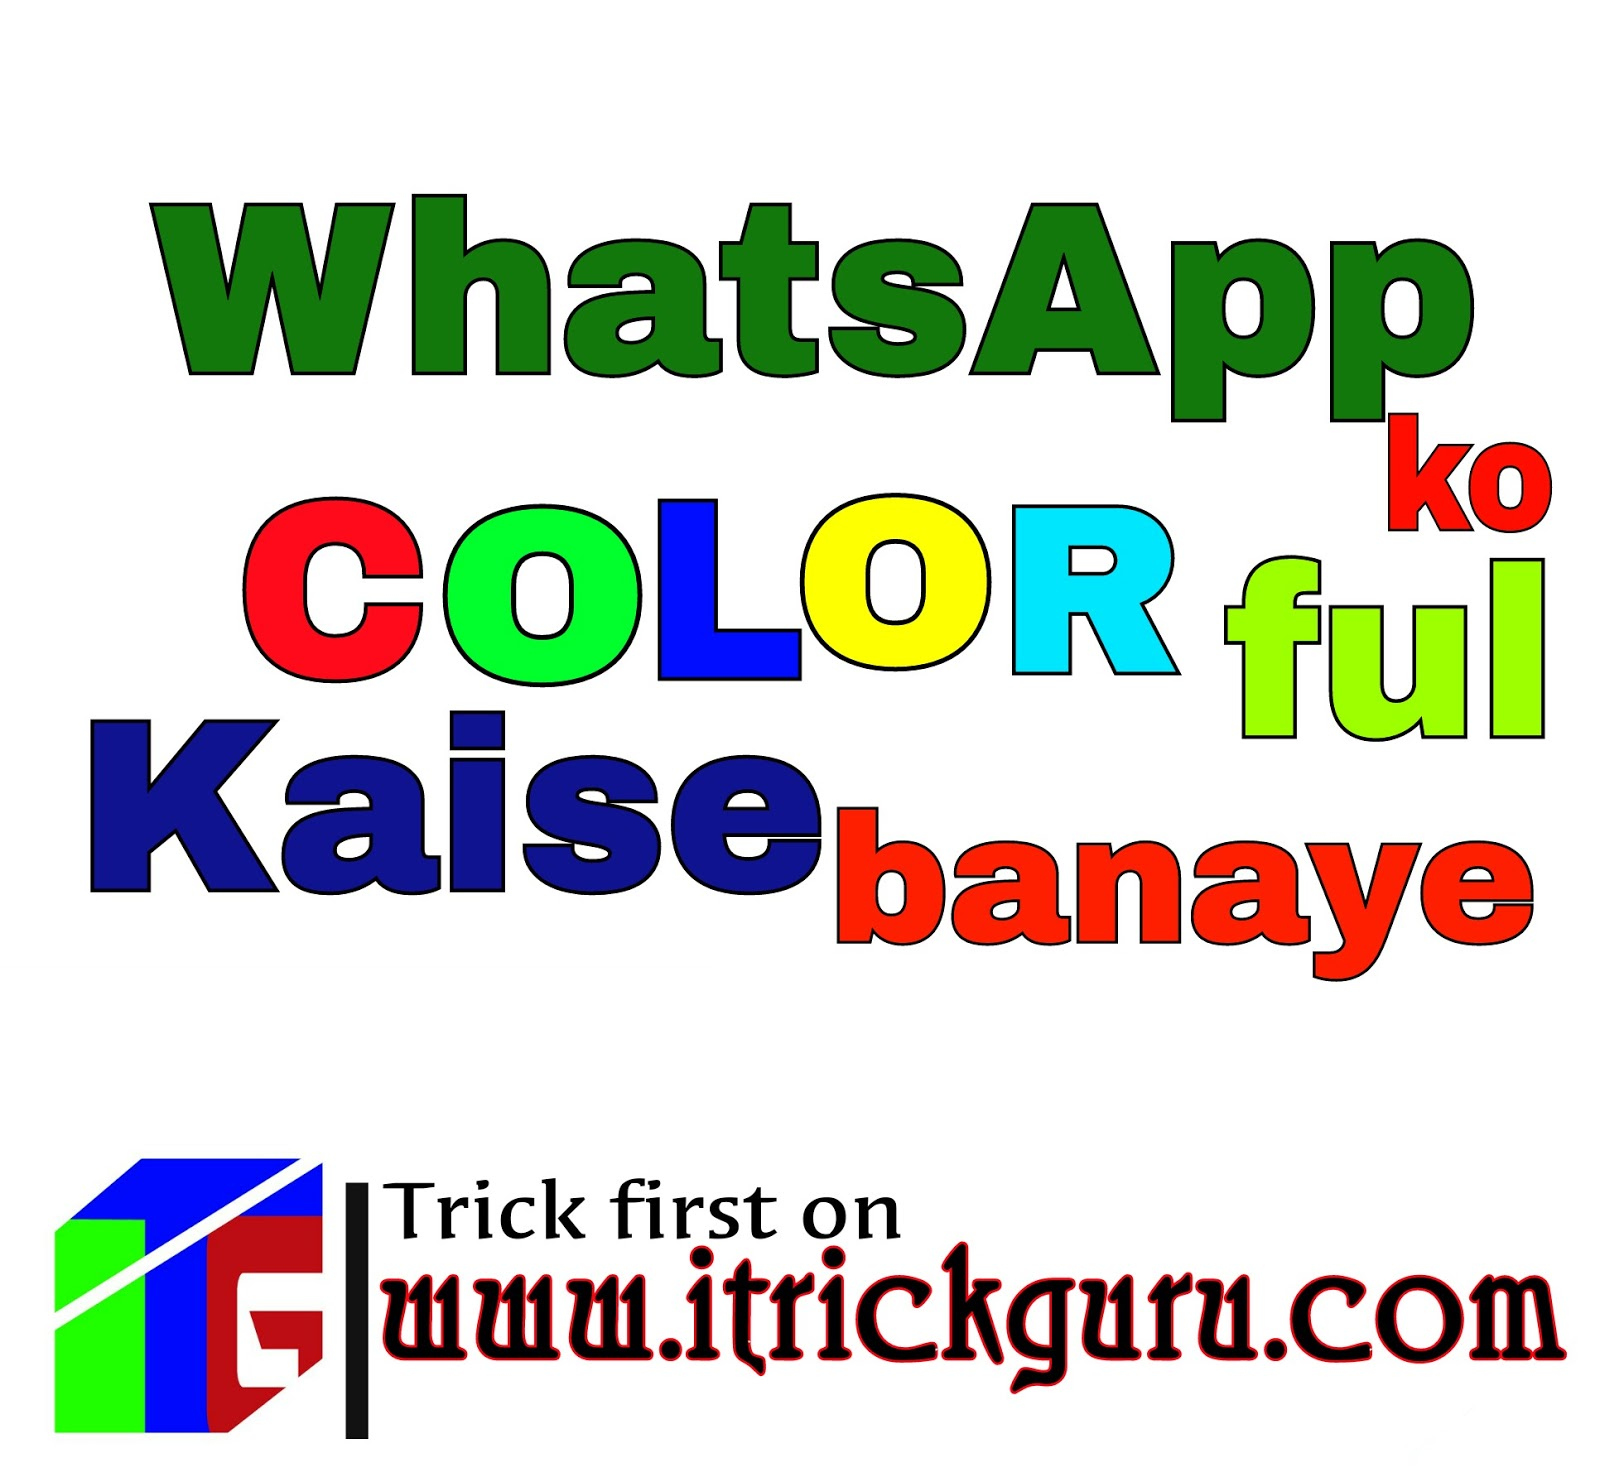 how to make WhatsApp more colorful